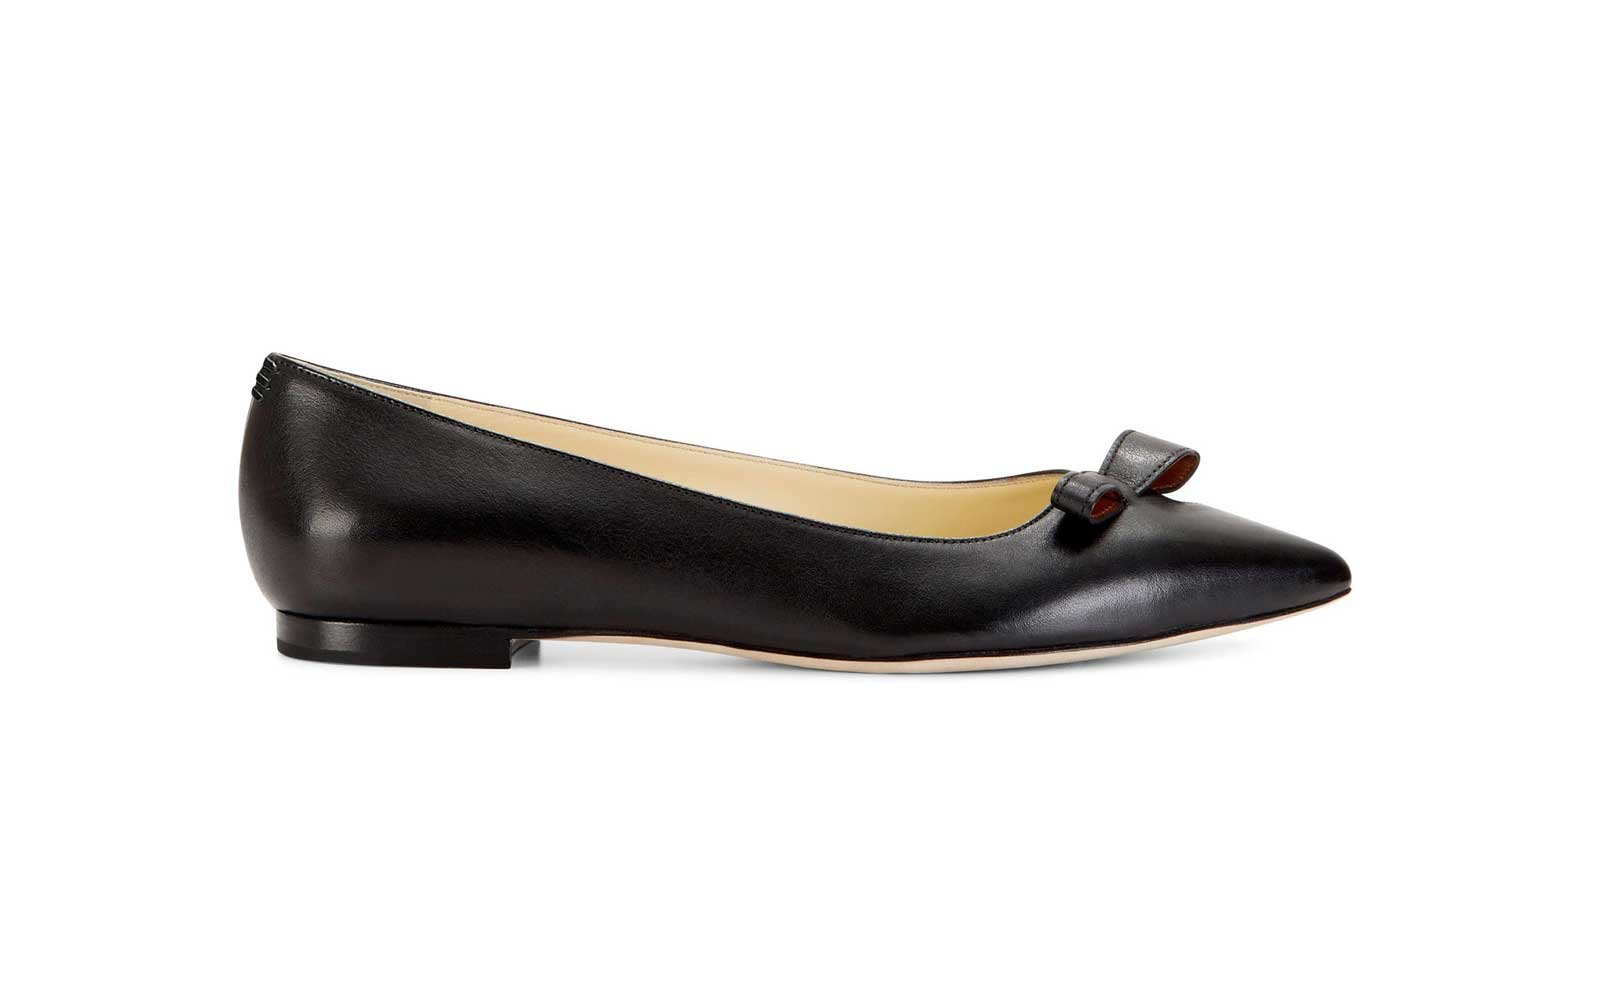 The Pointed-toe Flat: Sarah Flint Natalie Flats